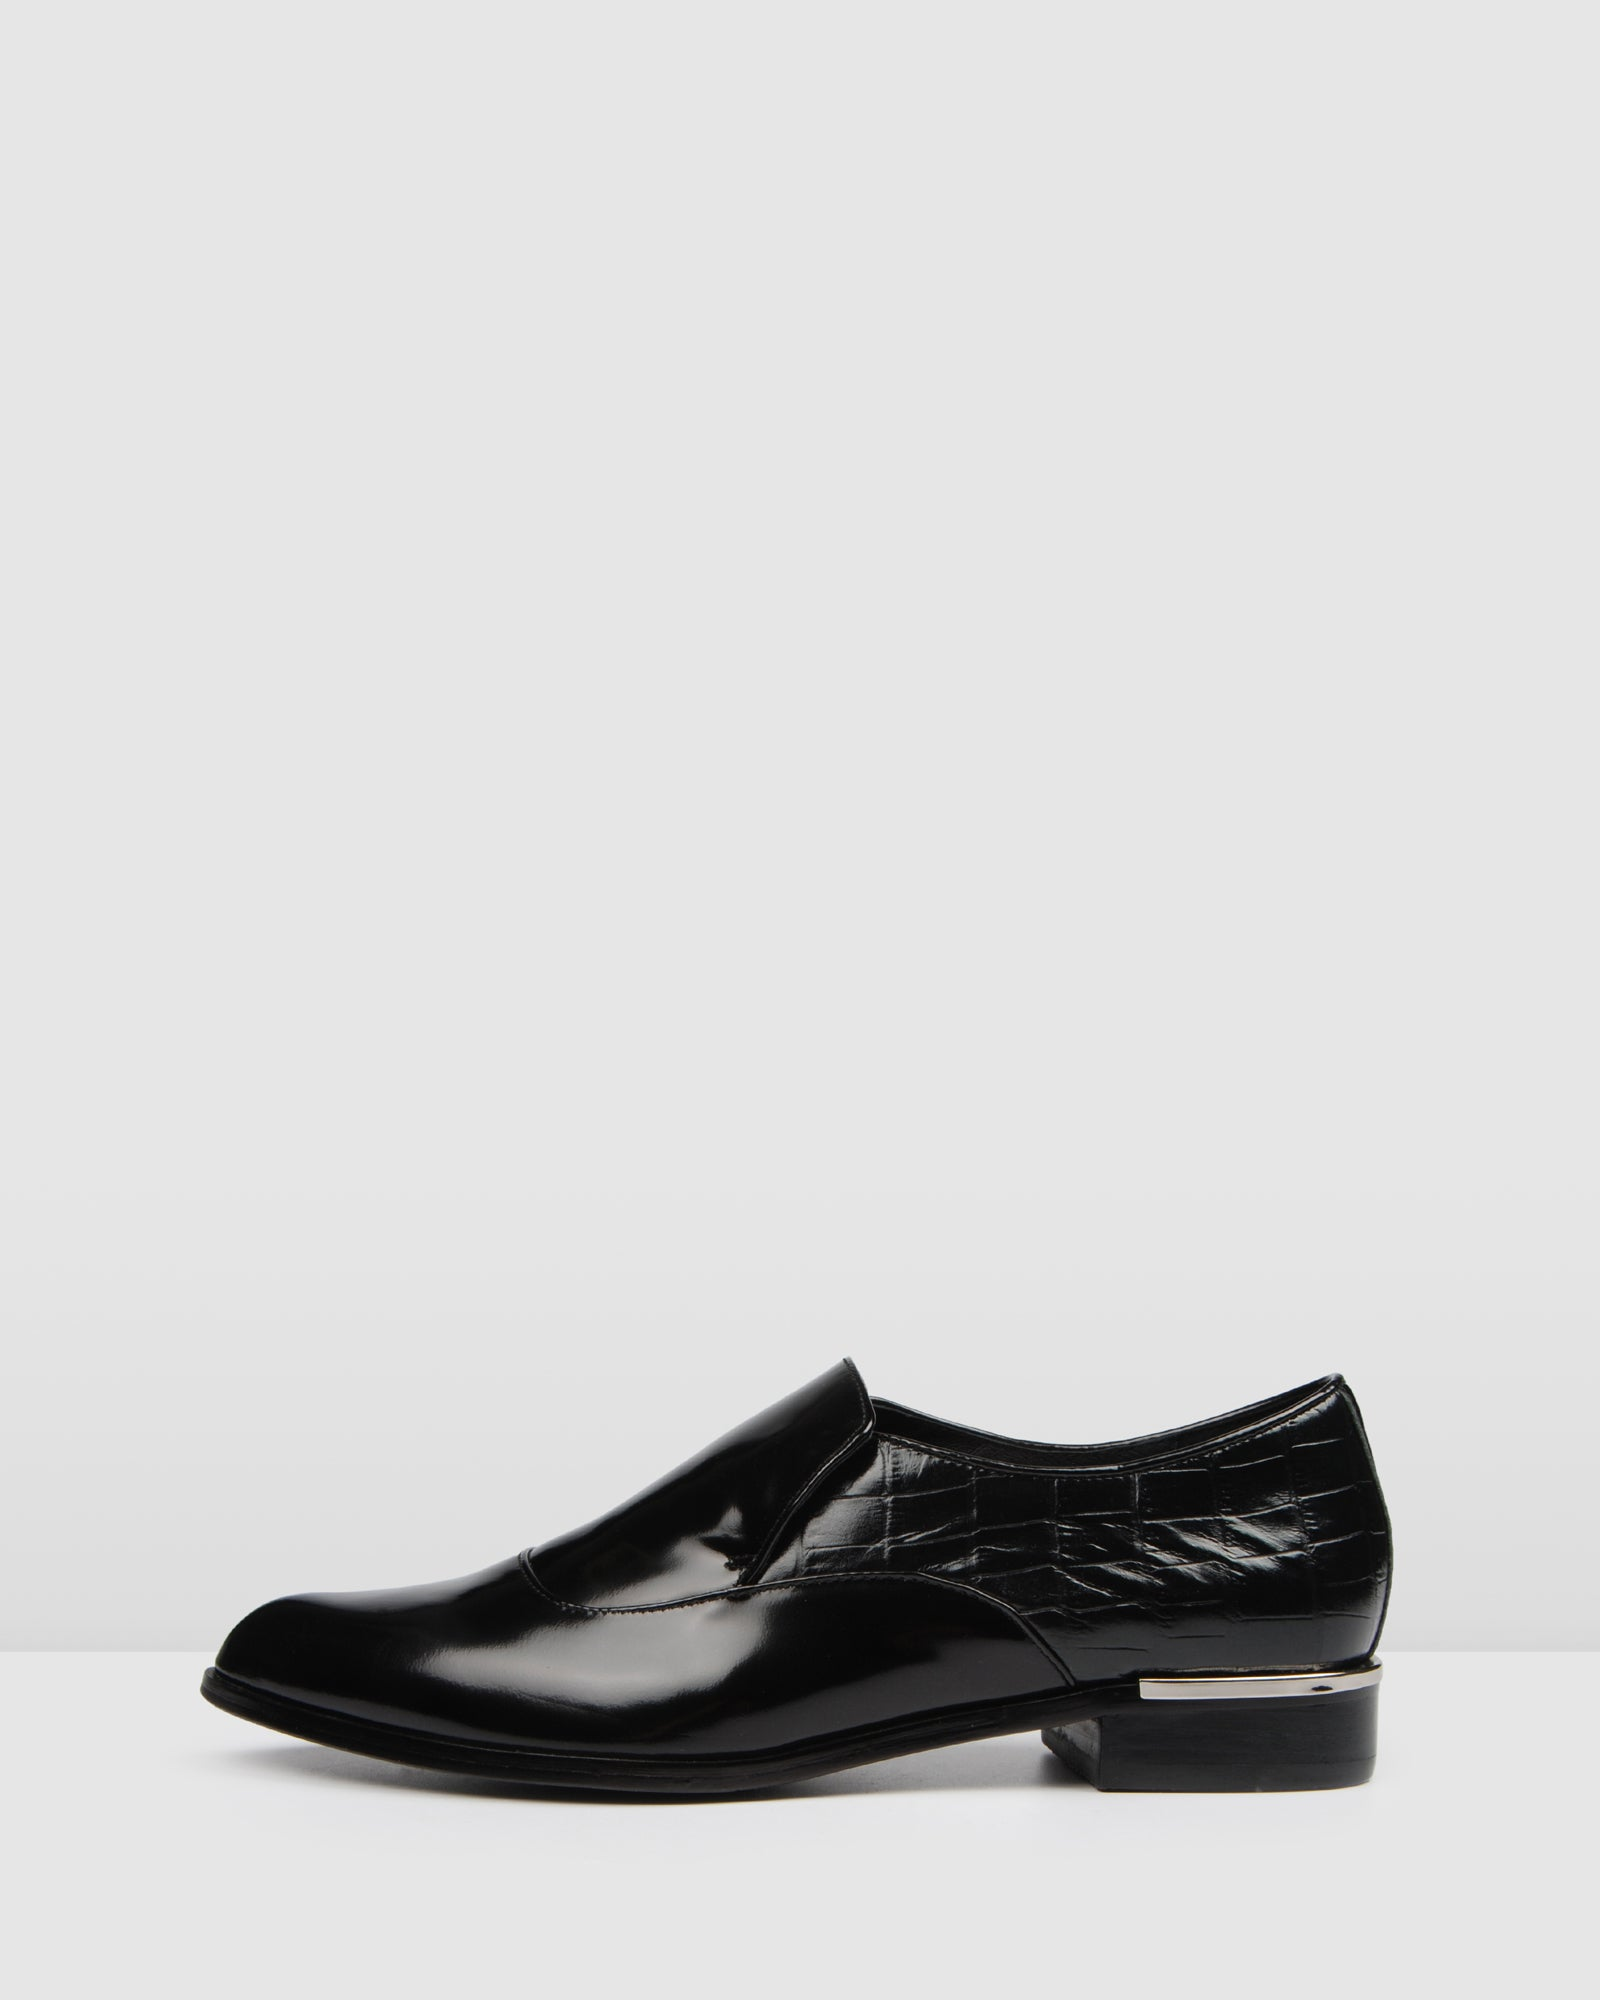 OUTPOST LOAFERS BLACK MULTI